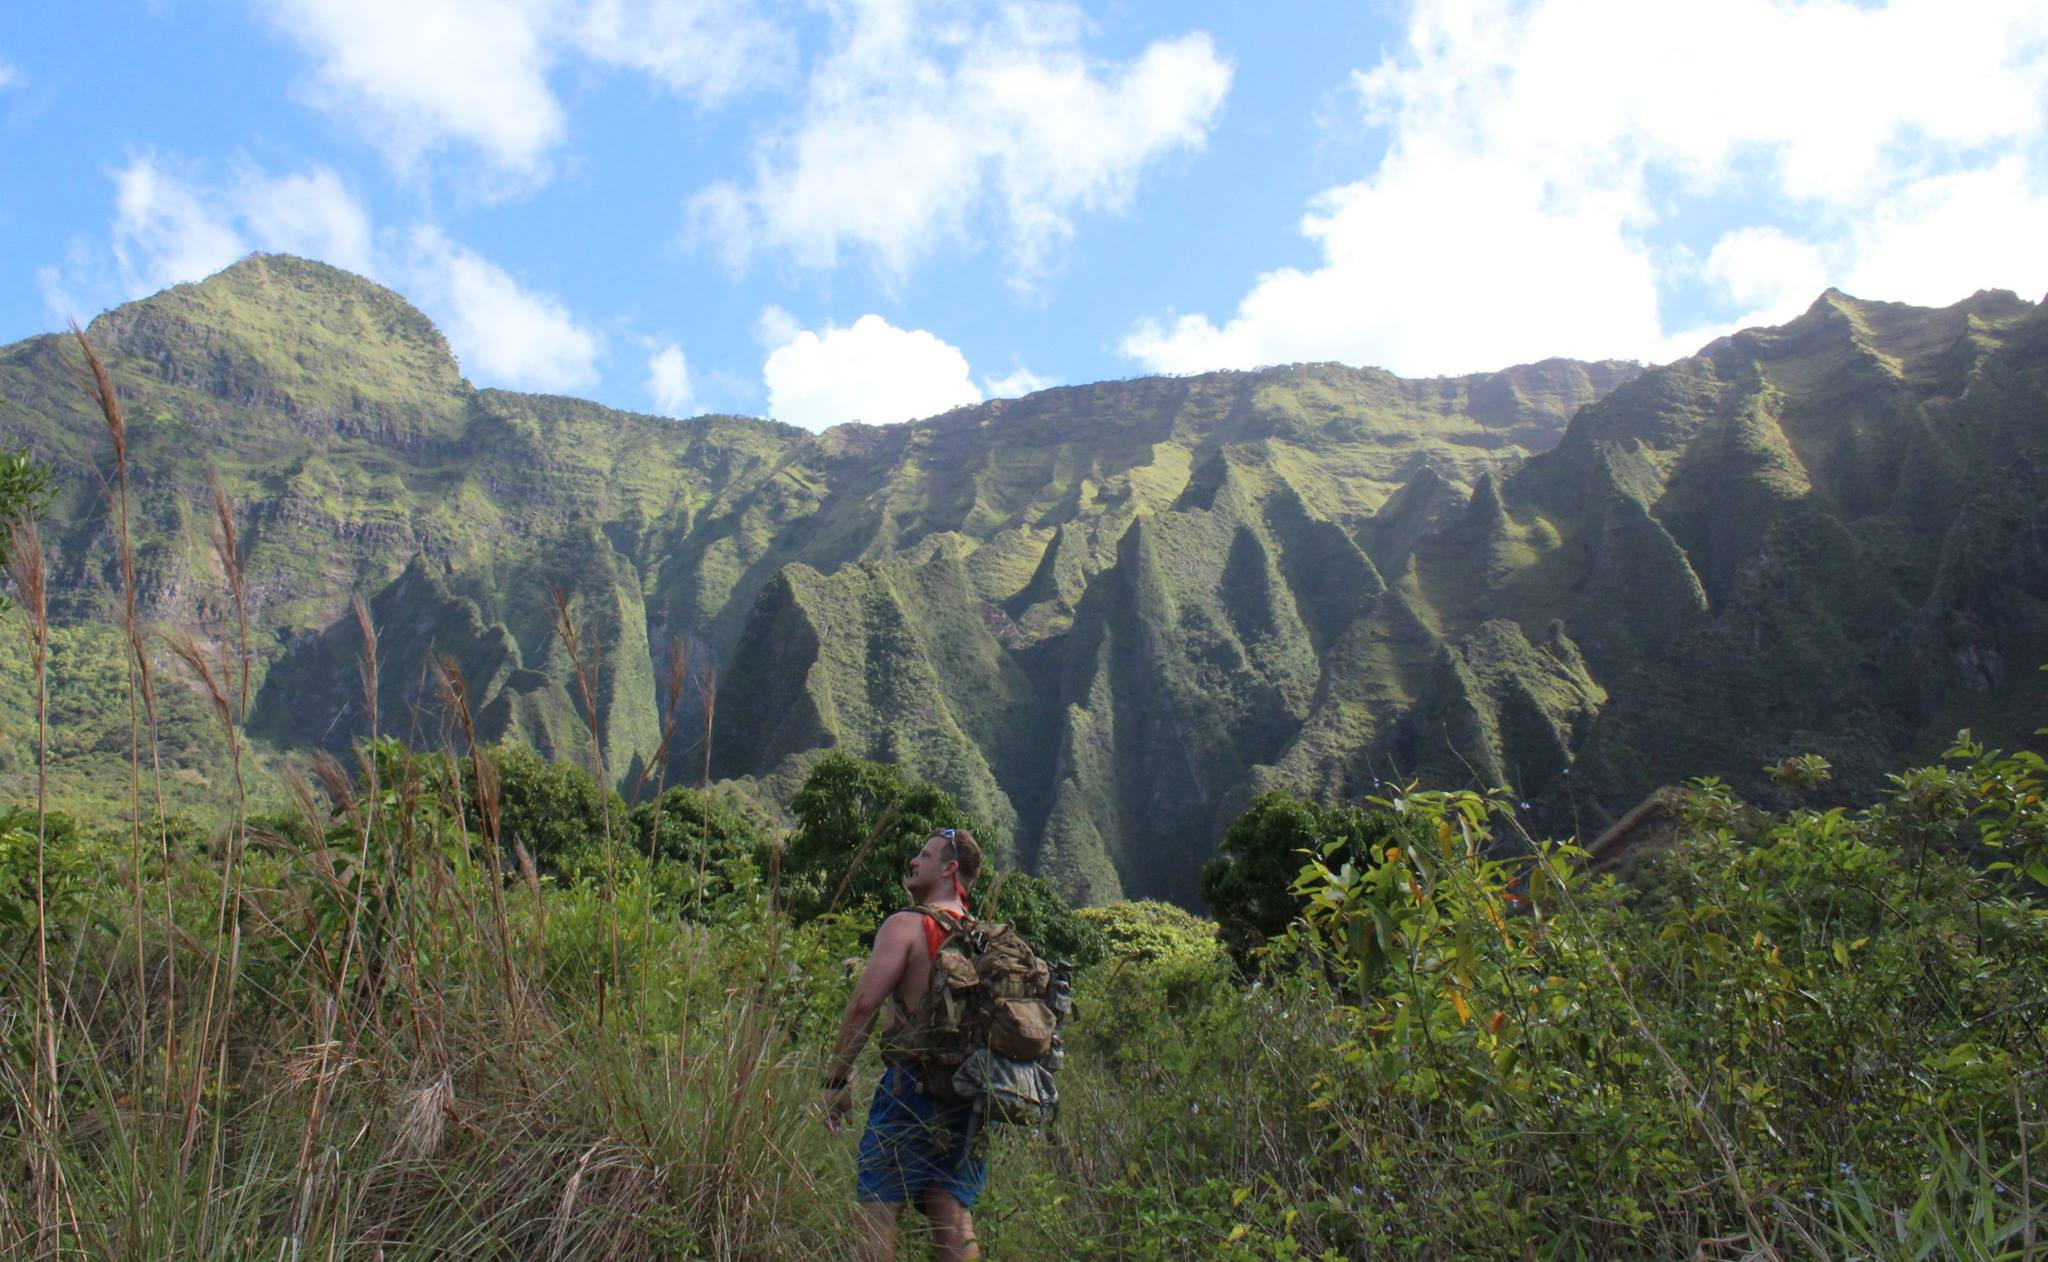 Tips For Hiking The Nā Pali Coast - Kalalau Valley & Trail - CommuniKait